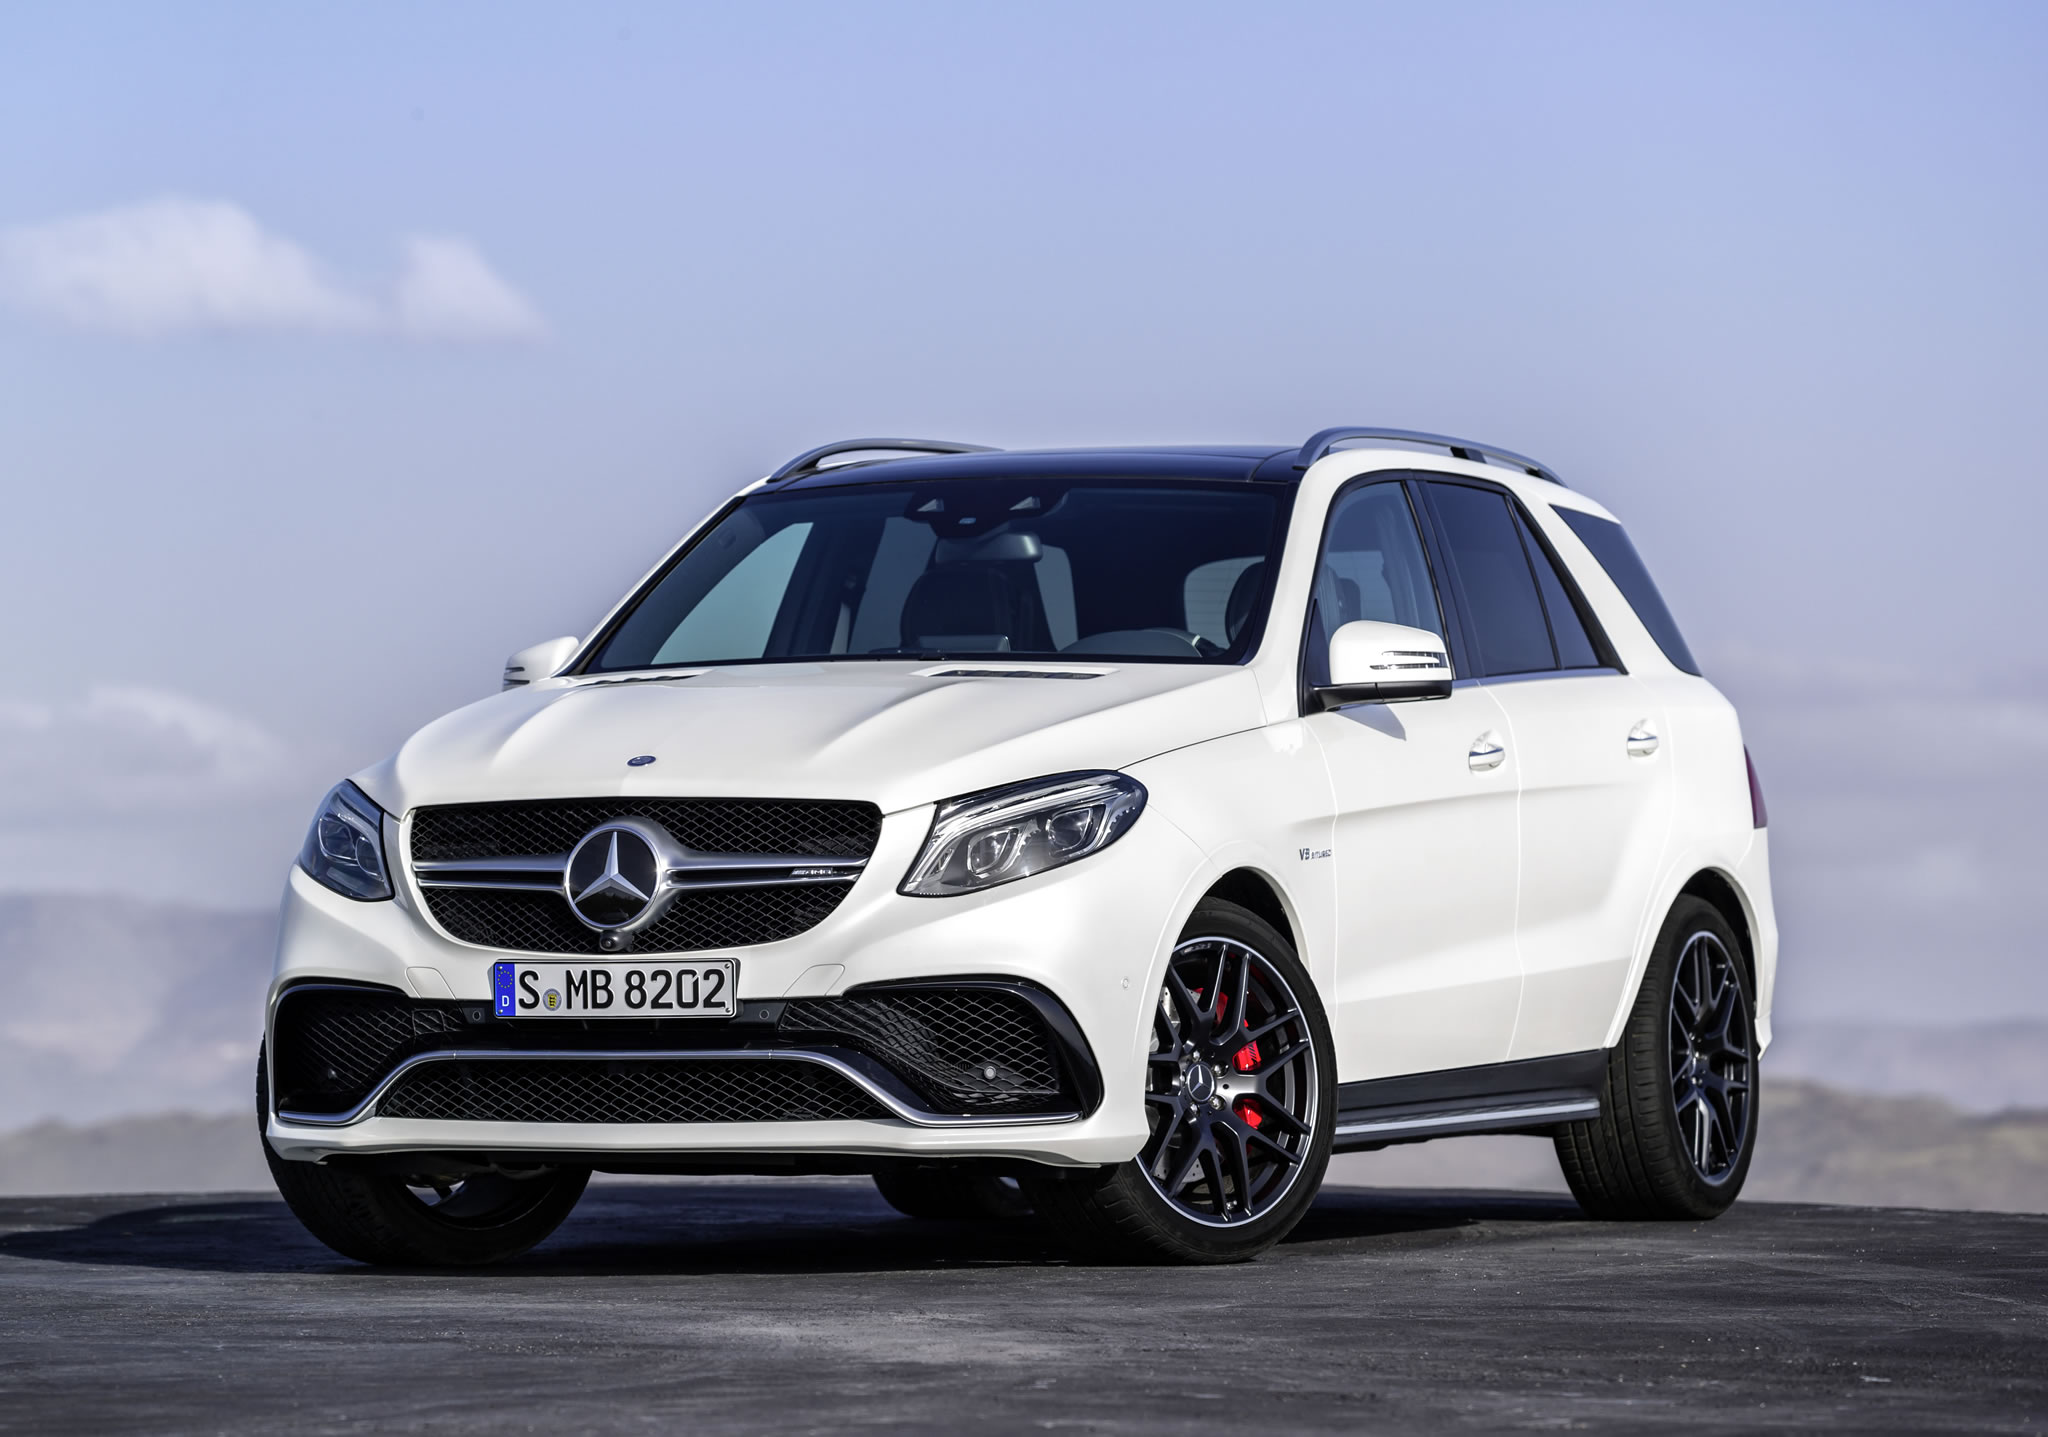 2016 mercedes benz amg gle63 s front photo polar white for Mercedes benz creator